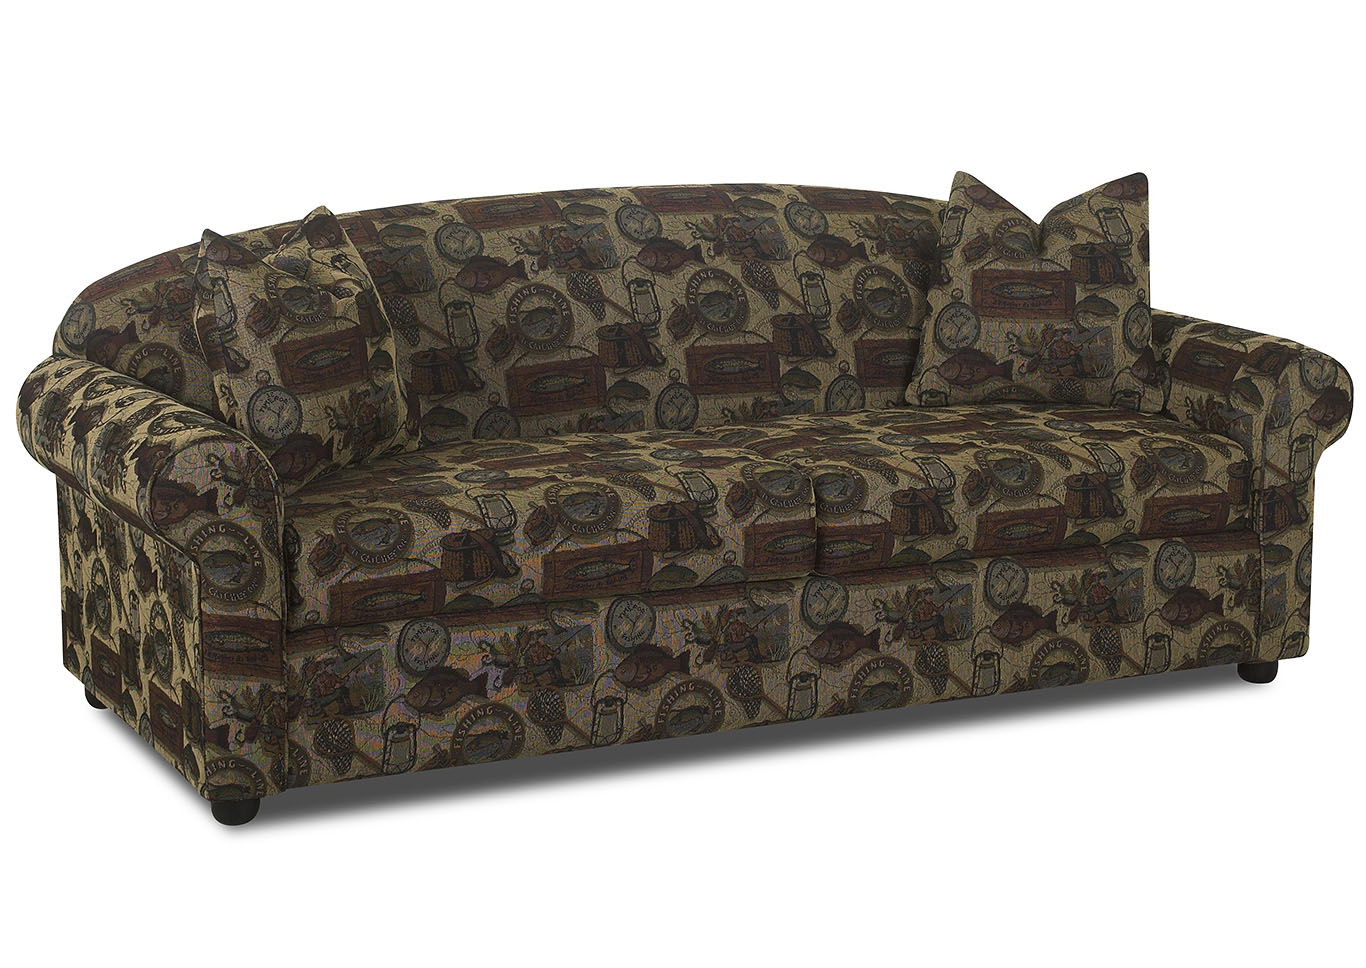 Possibilities Multi-Colored Stationary Fabric Sofa,Klaussner Home Furnishings